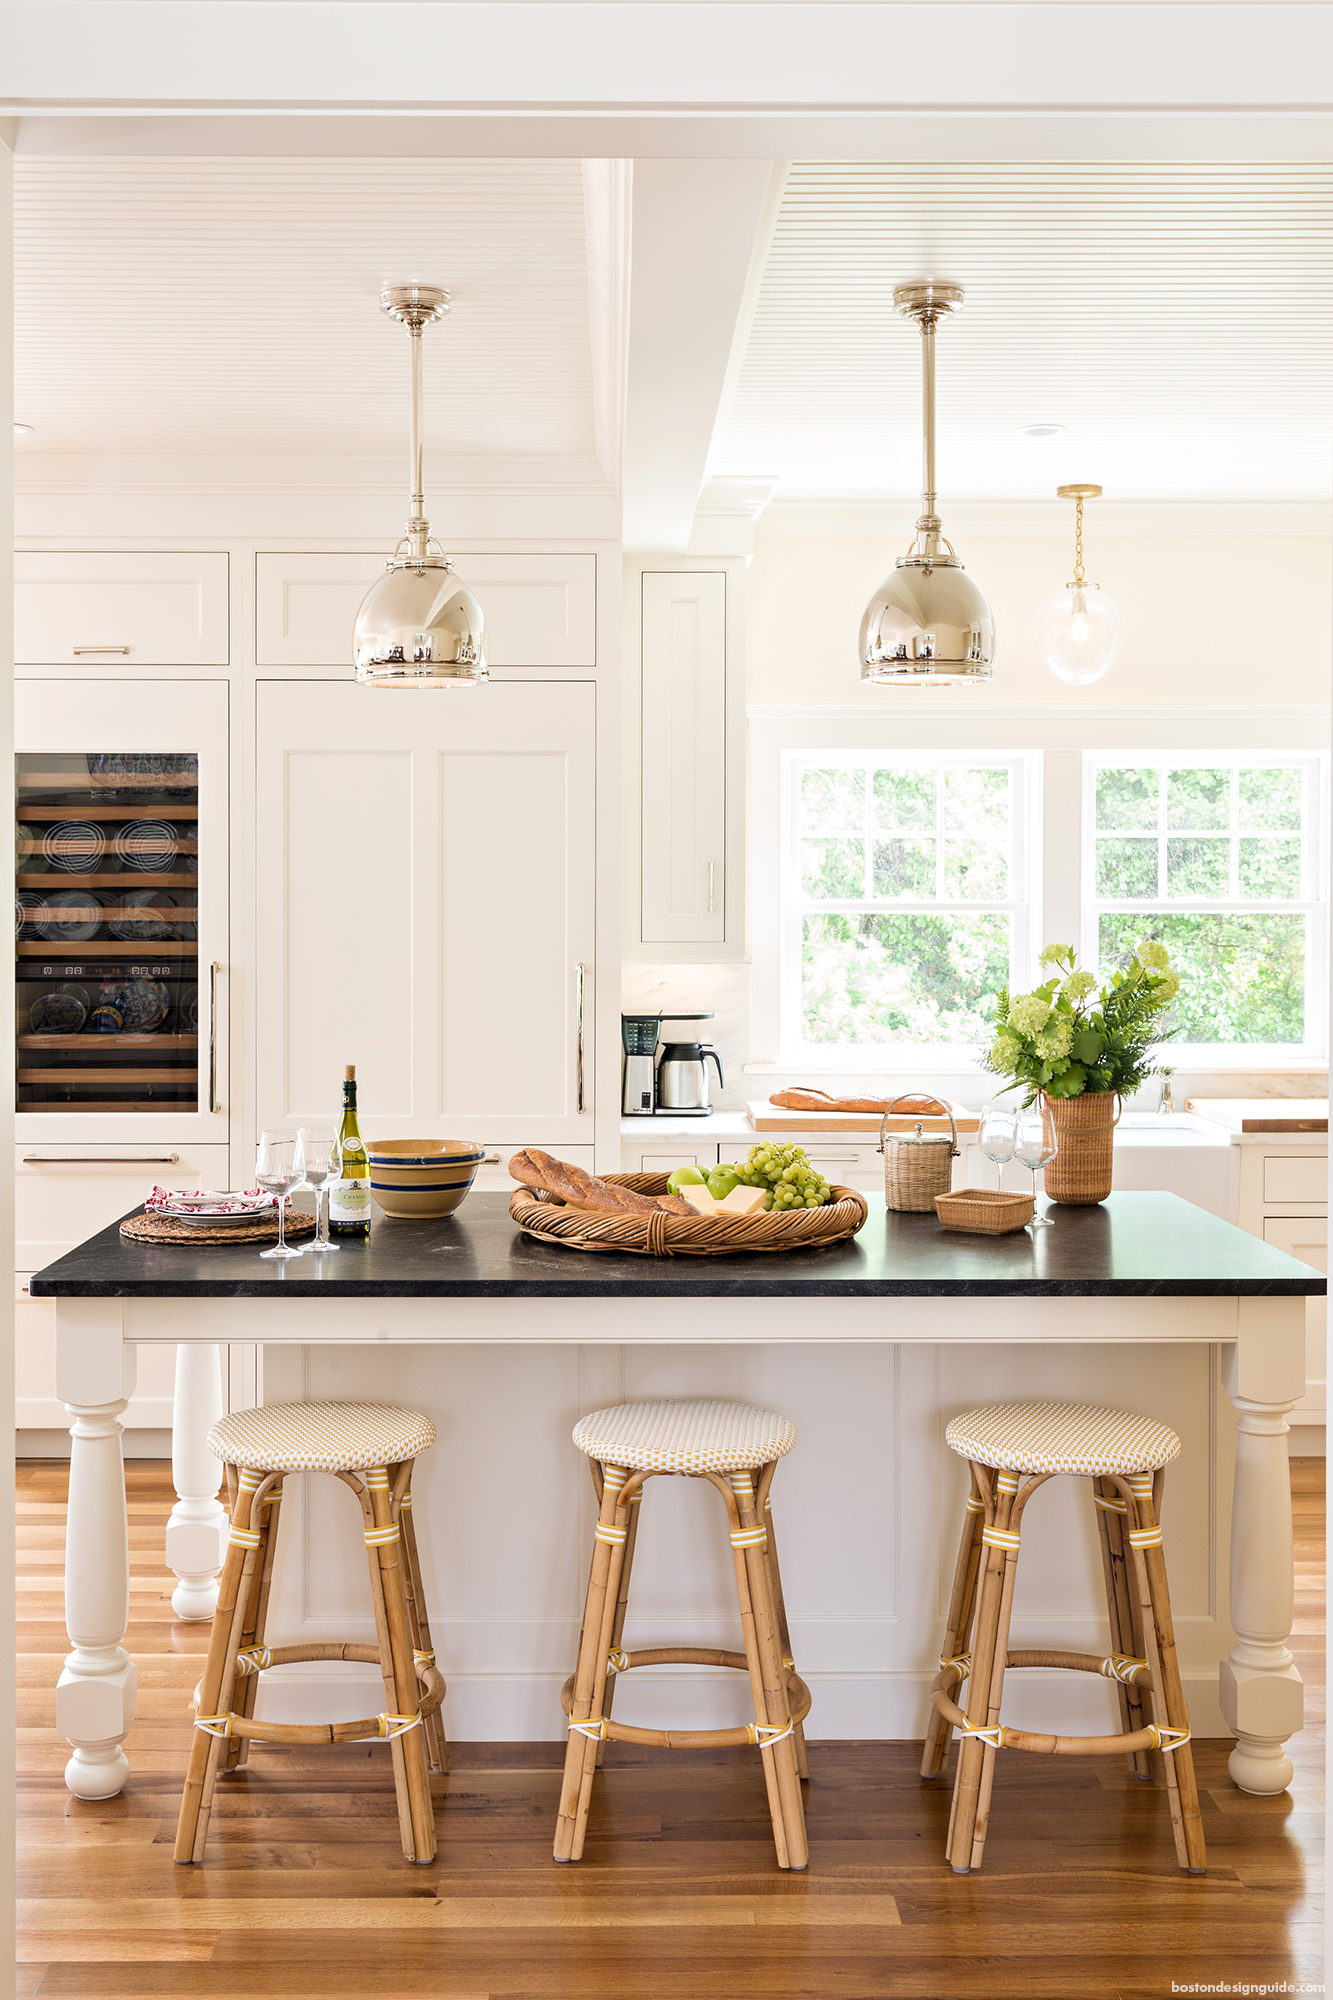 Faneuil Kitchen Cabinet Boston Design Guide